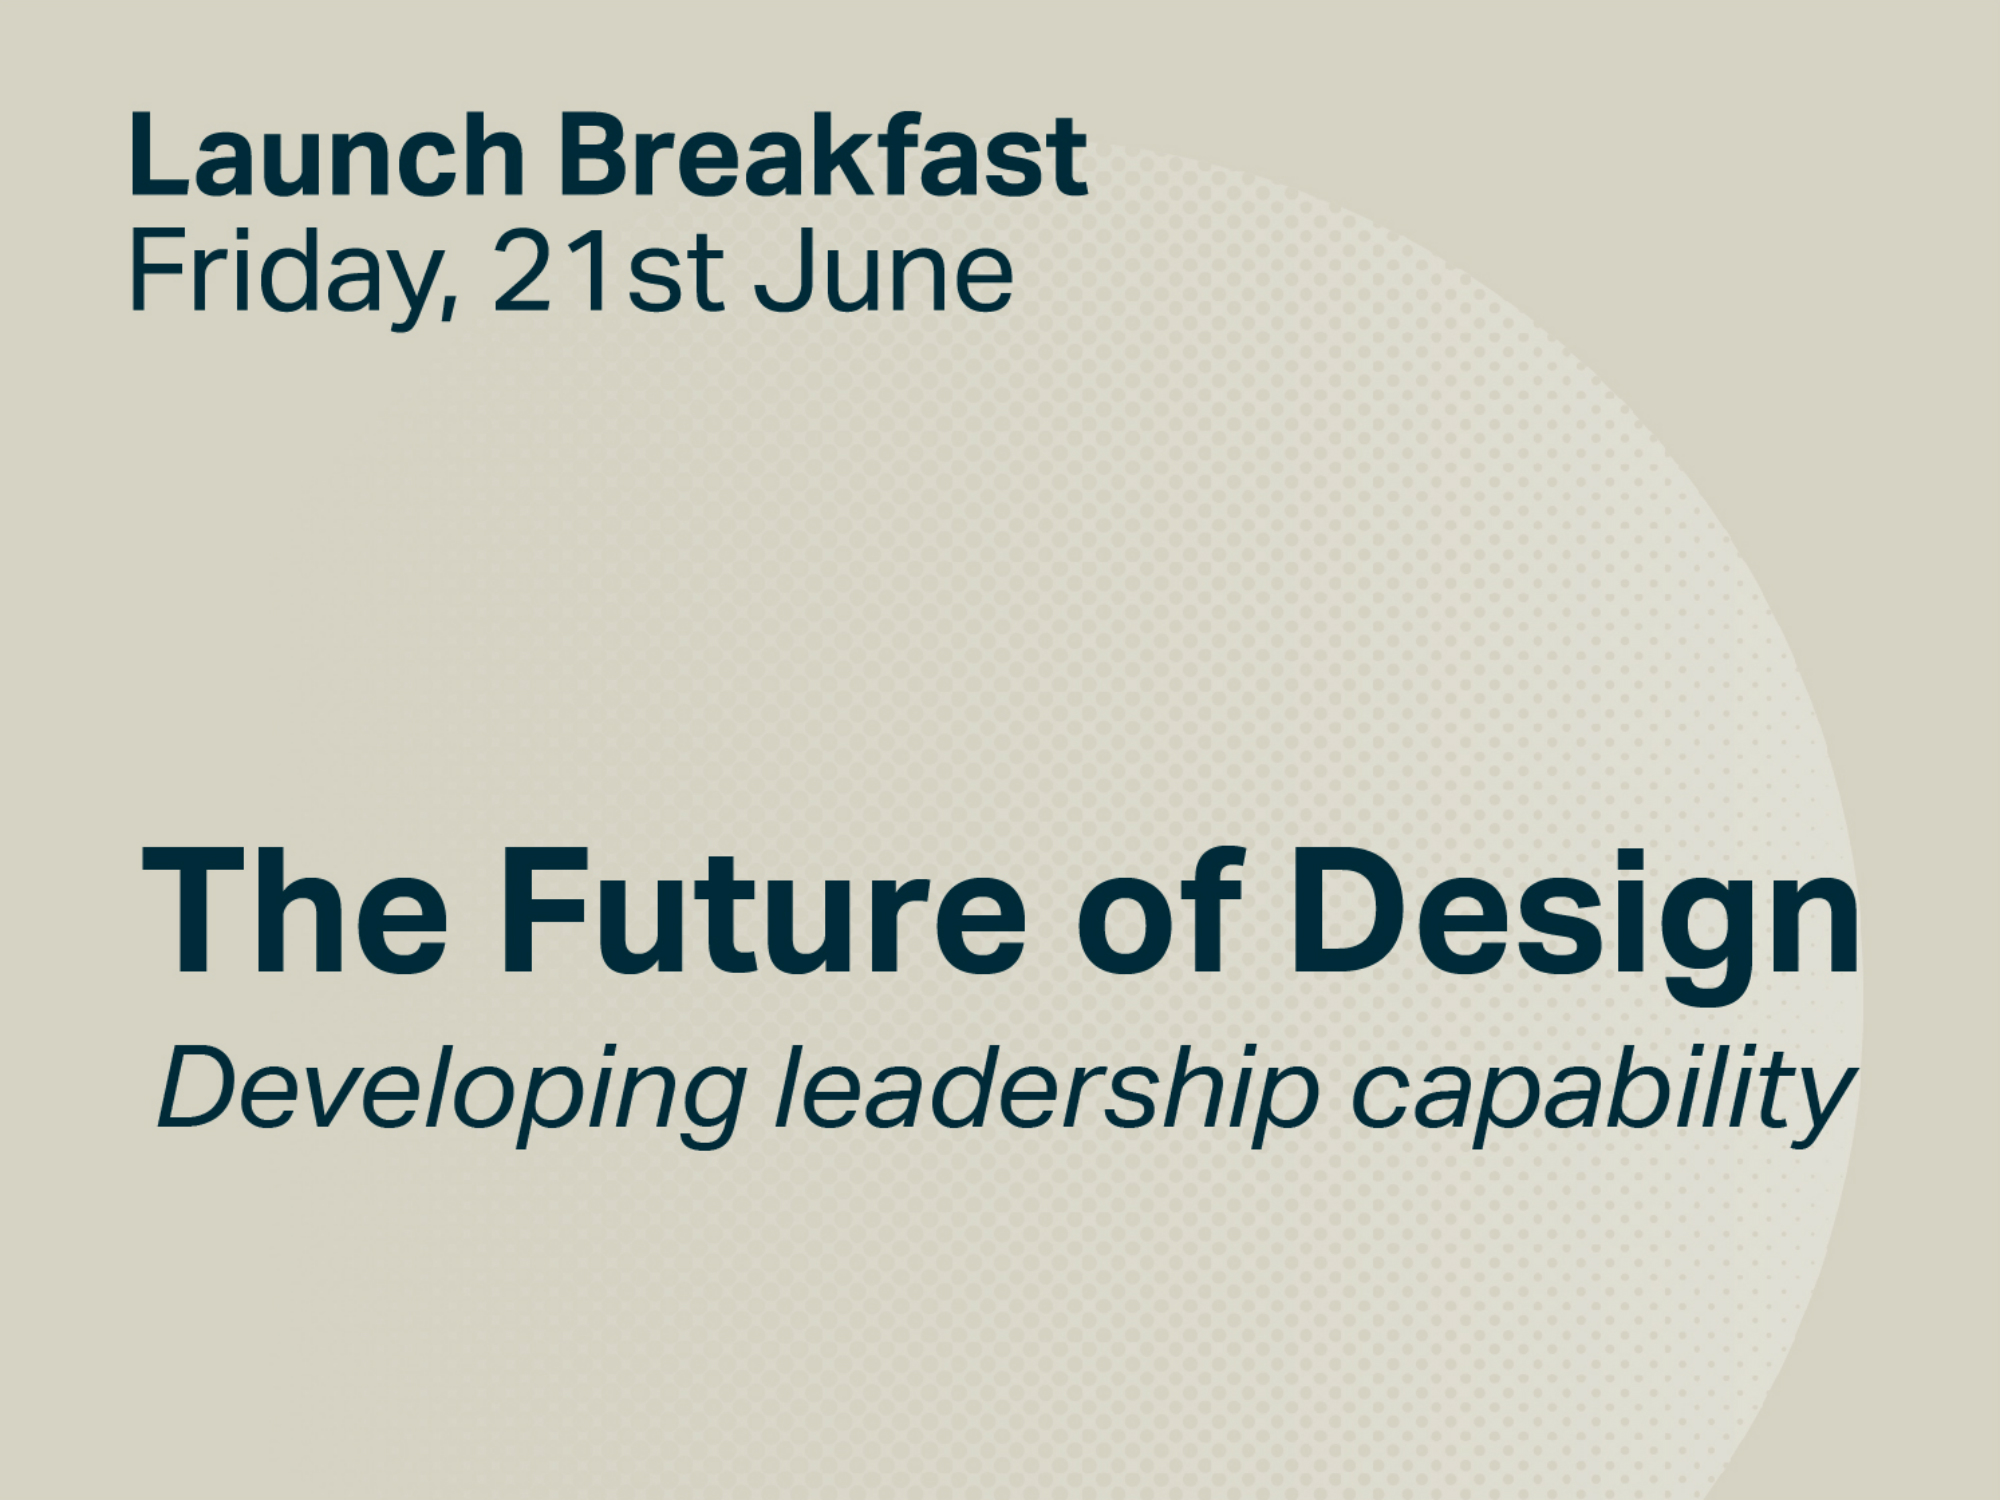 Cover image: The Future of Design: Launch Breakfast